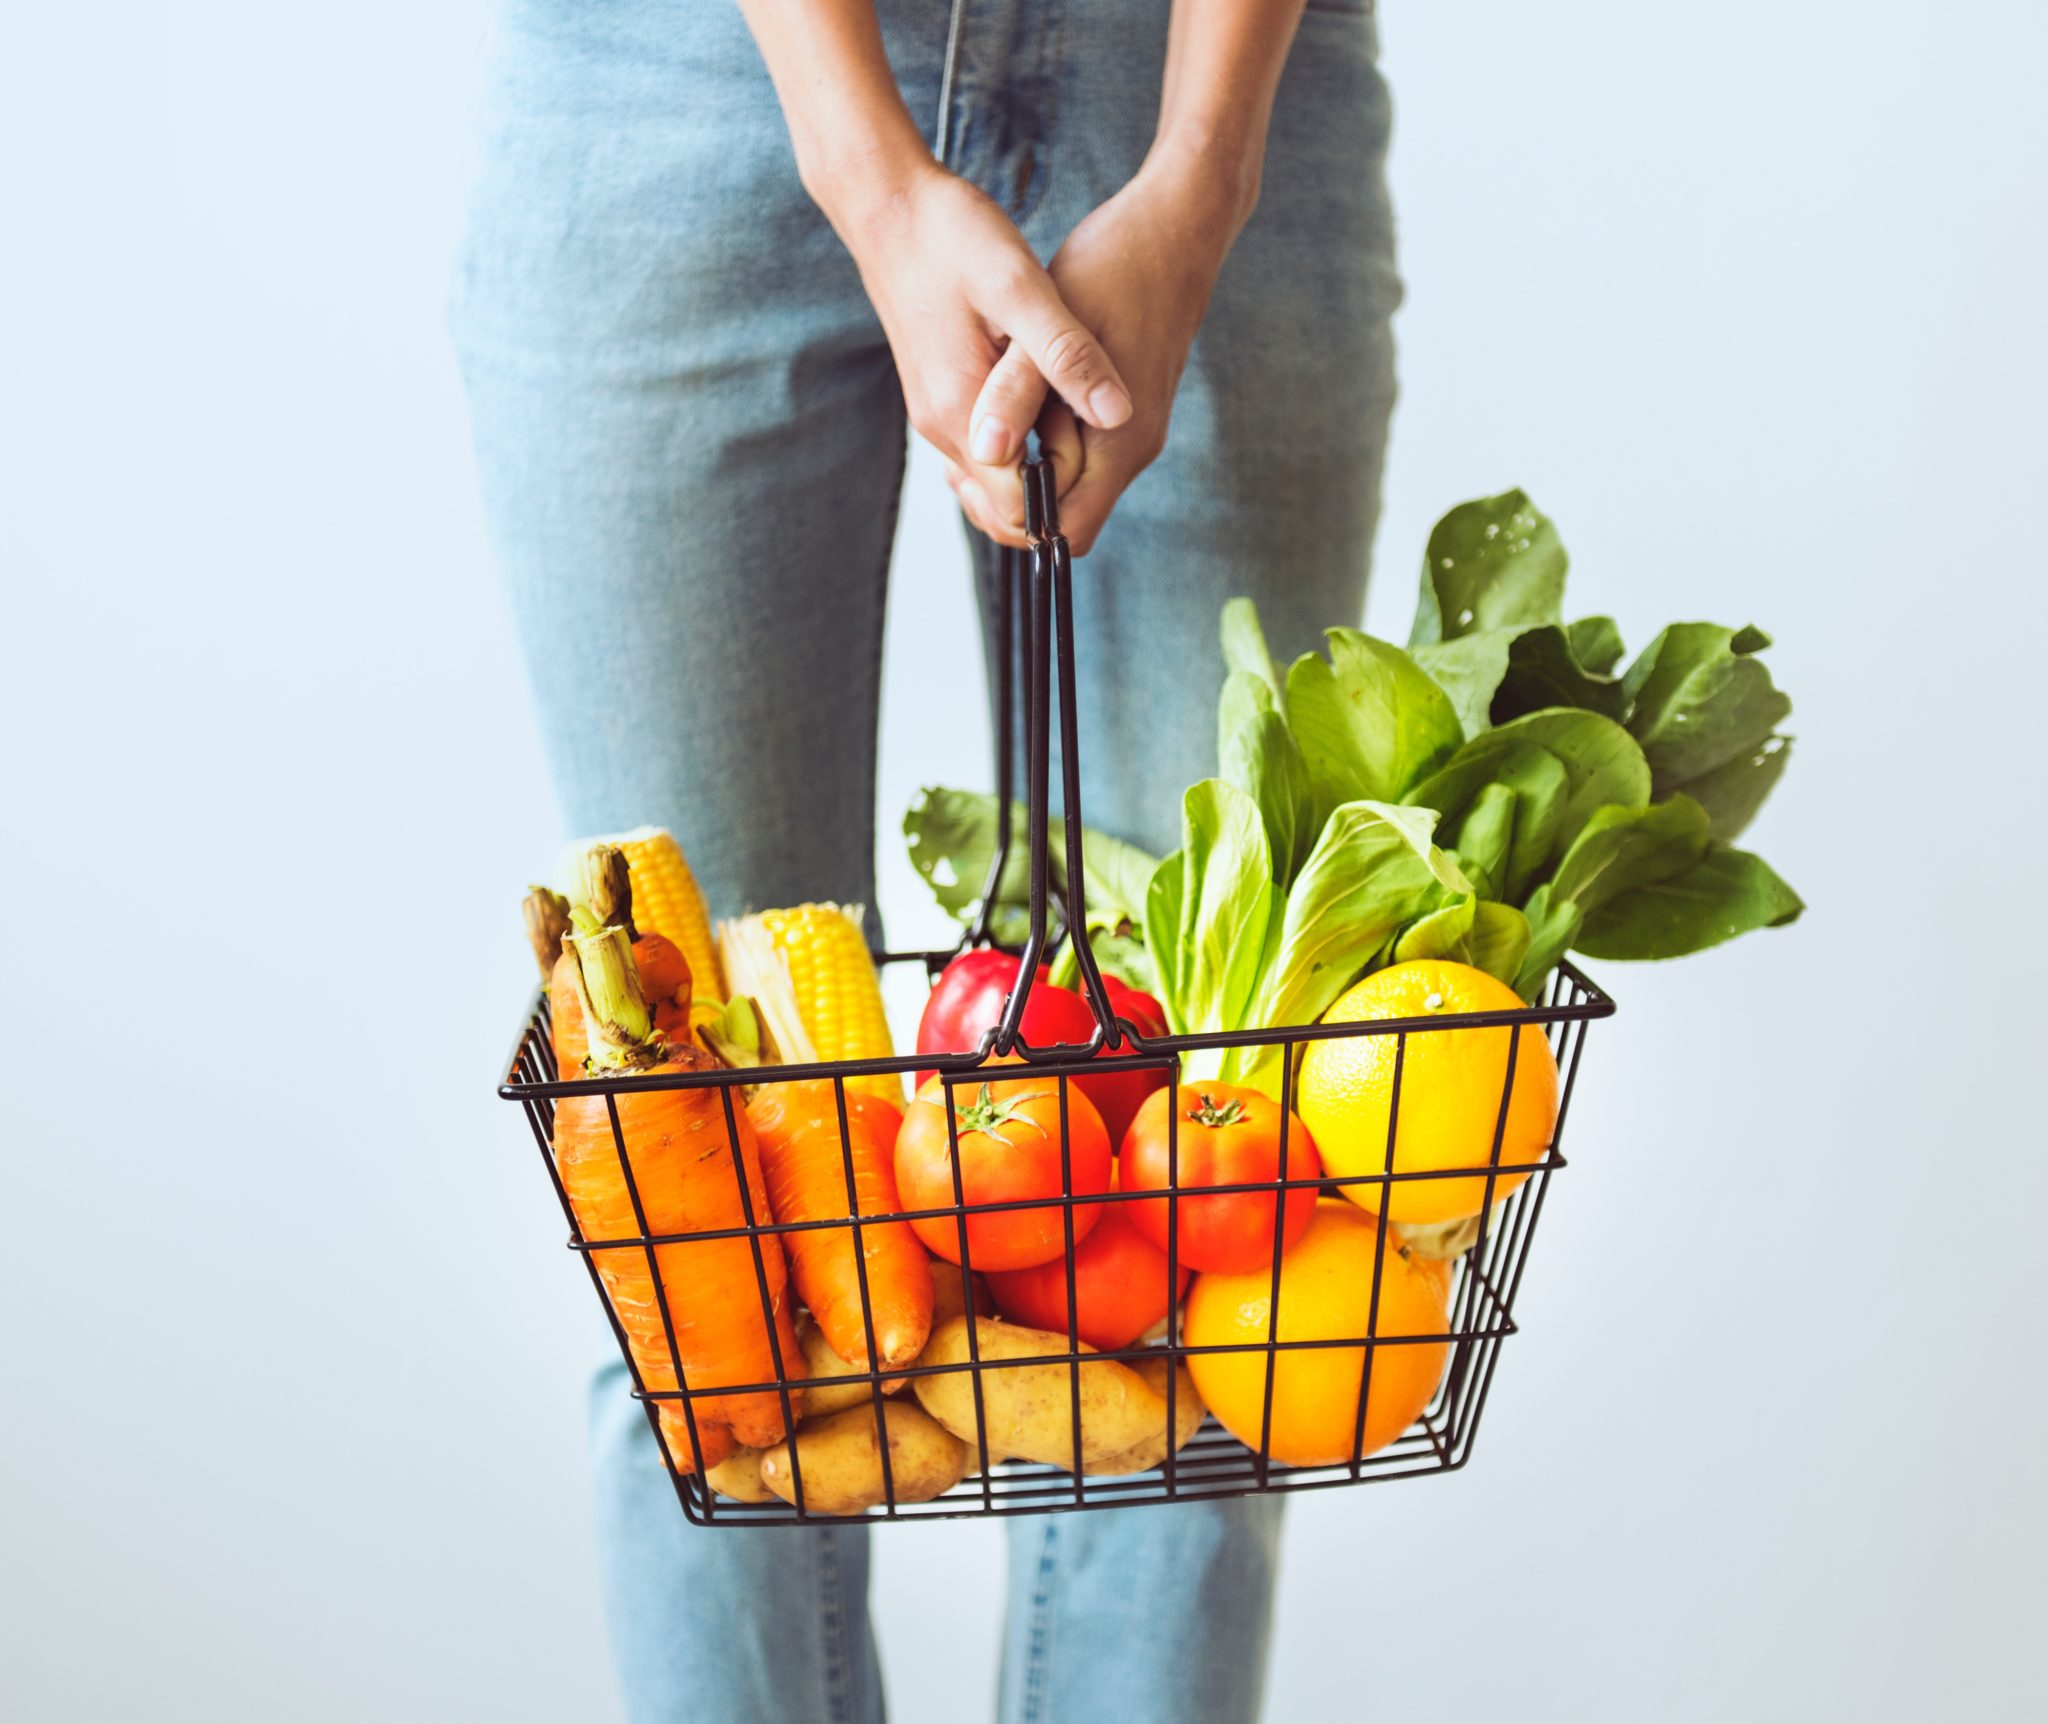 rawpixel 780498 unsplash - 15 Easy Ways to Eat Well for Less